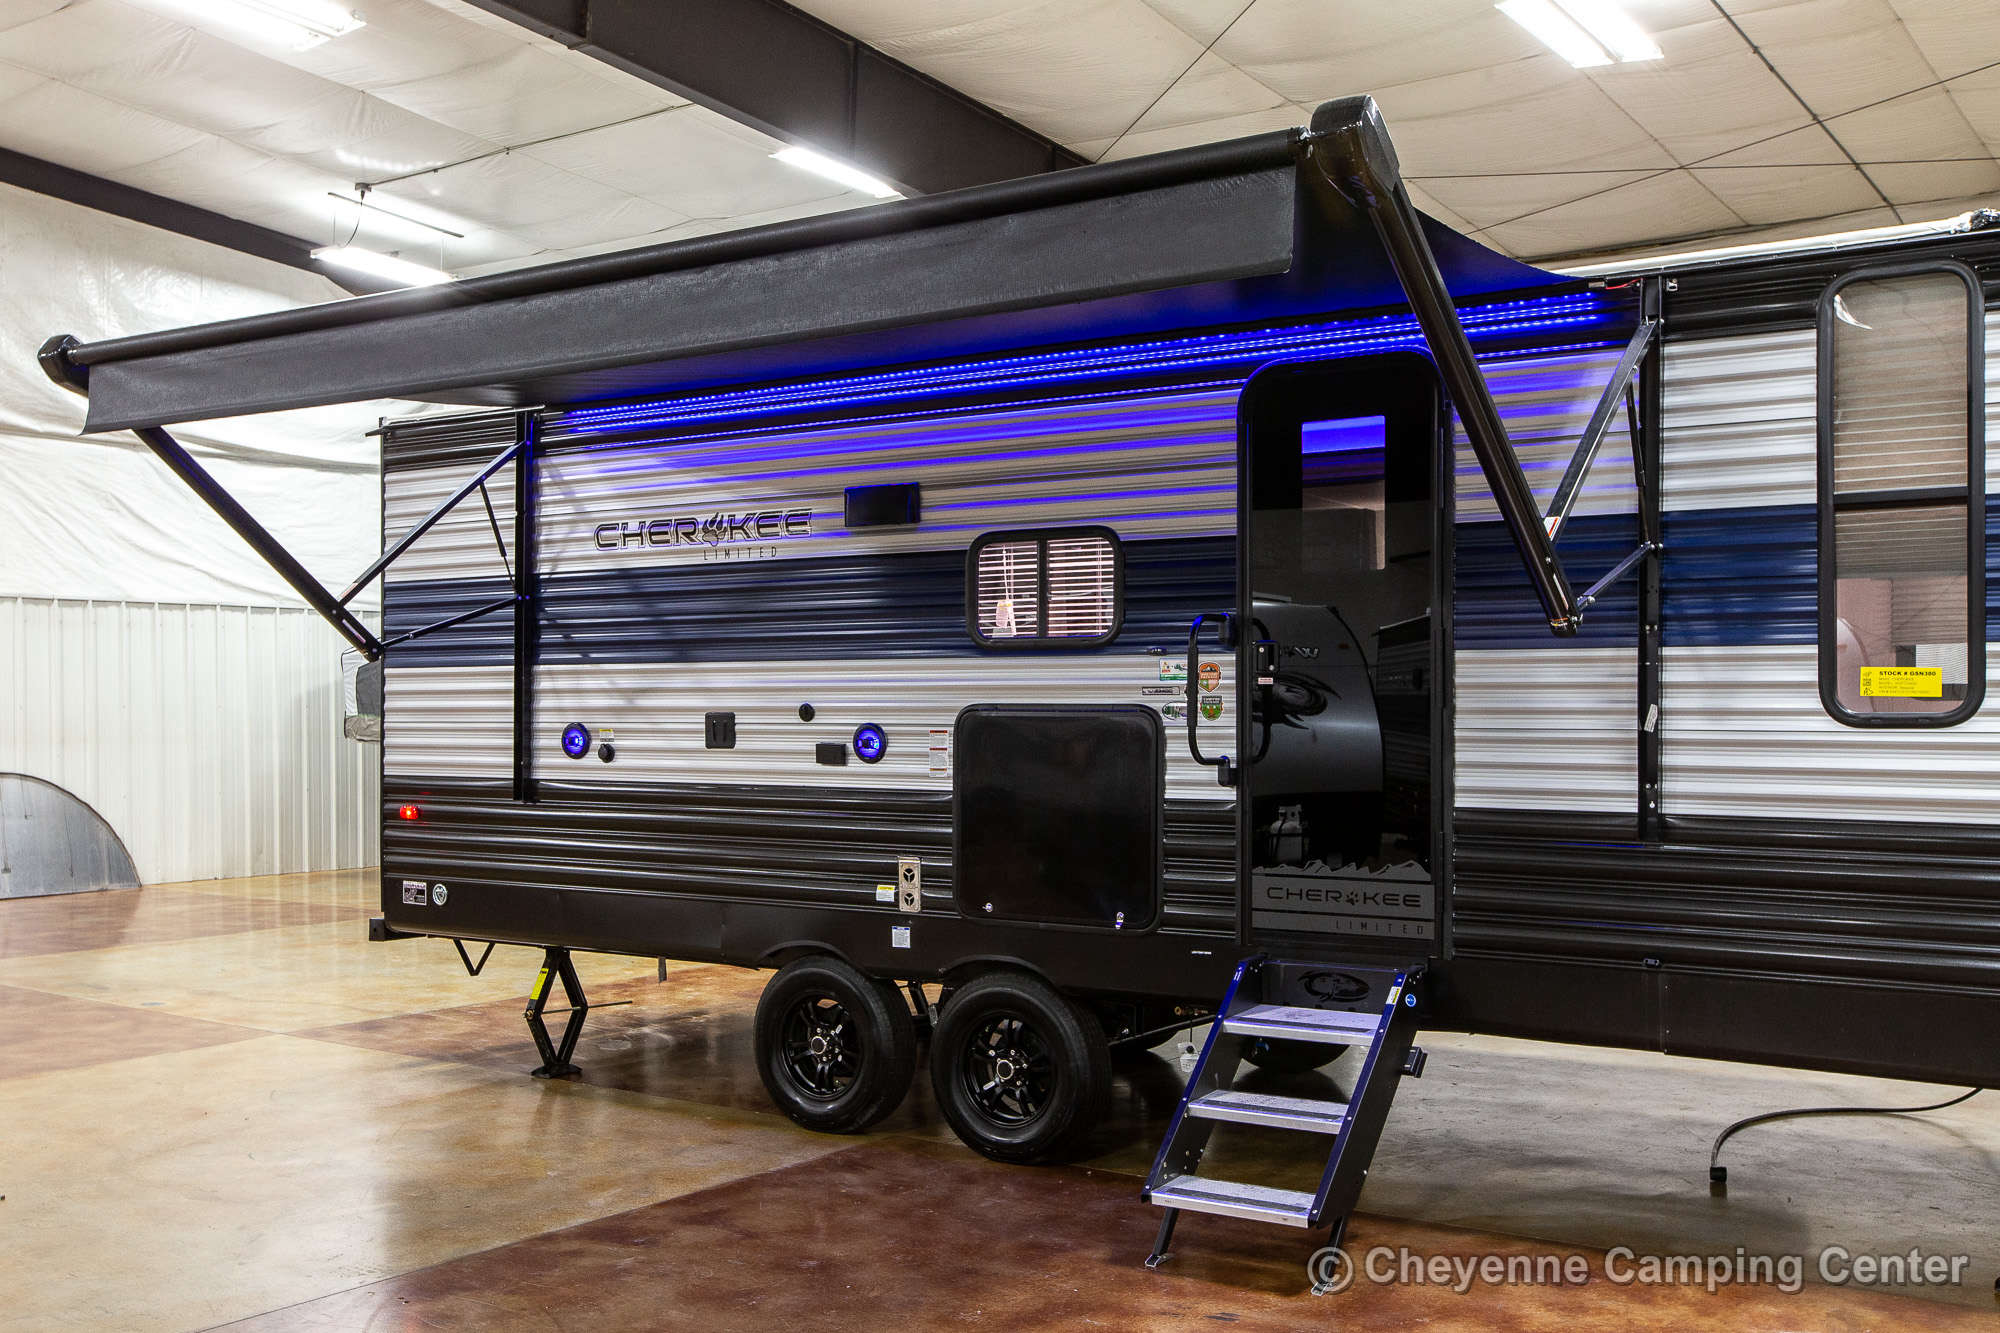 2022 Forest River Cherokee 234DC Travel Trailer Exterior Image